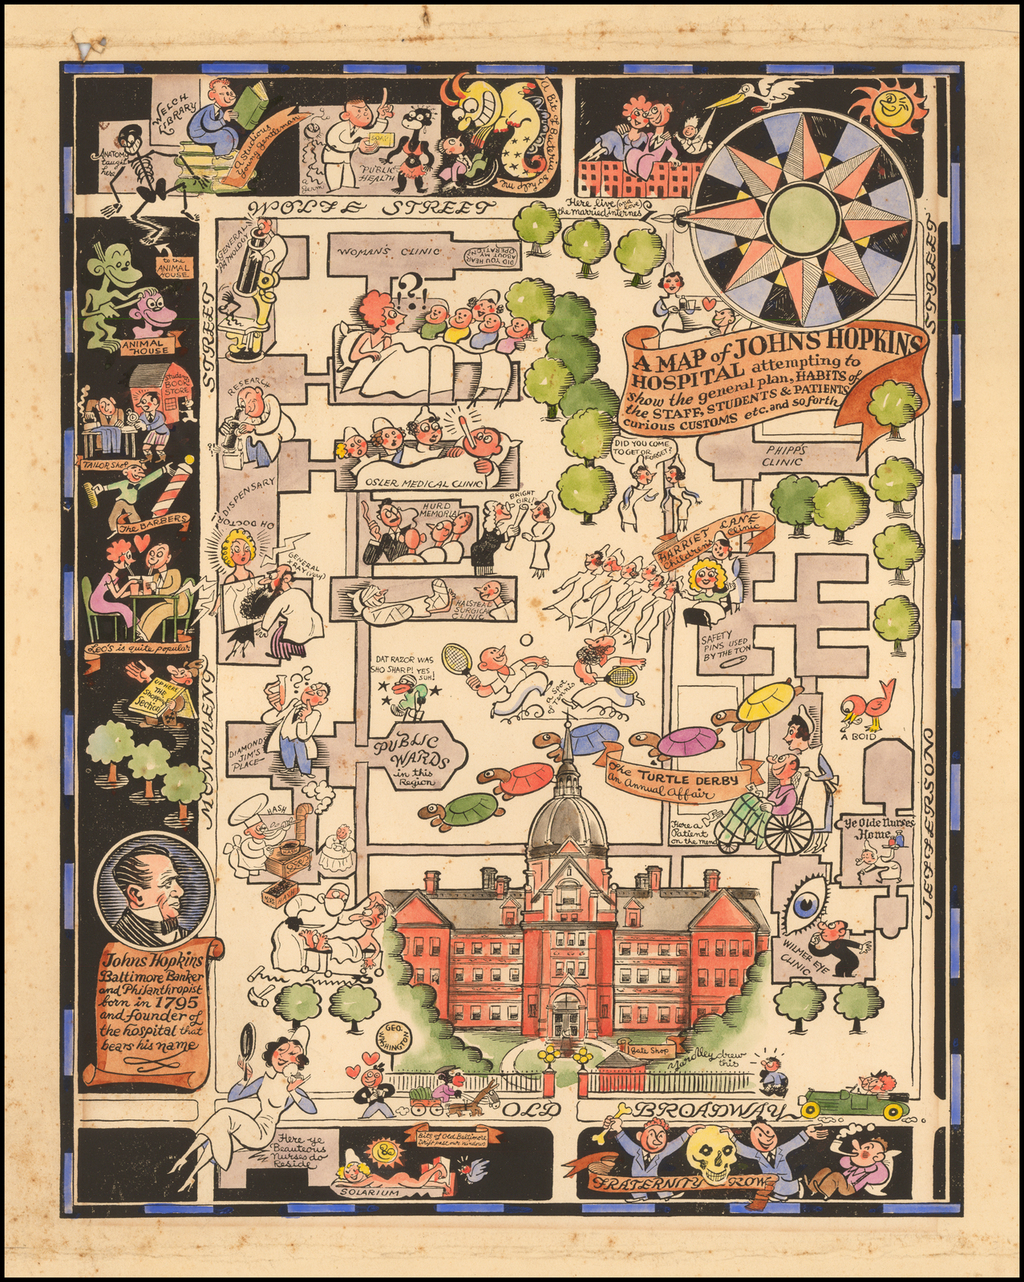 A Map of Johns Hopkins Hospital attempting to show the general plan, Habits of the Staff, Students & Patients curious Customs etc. and so forth By Richard Q. Yardley